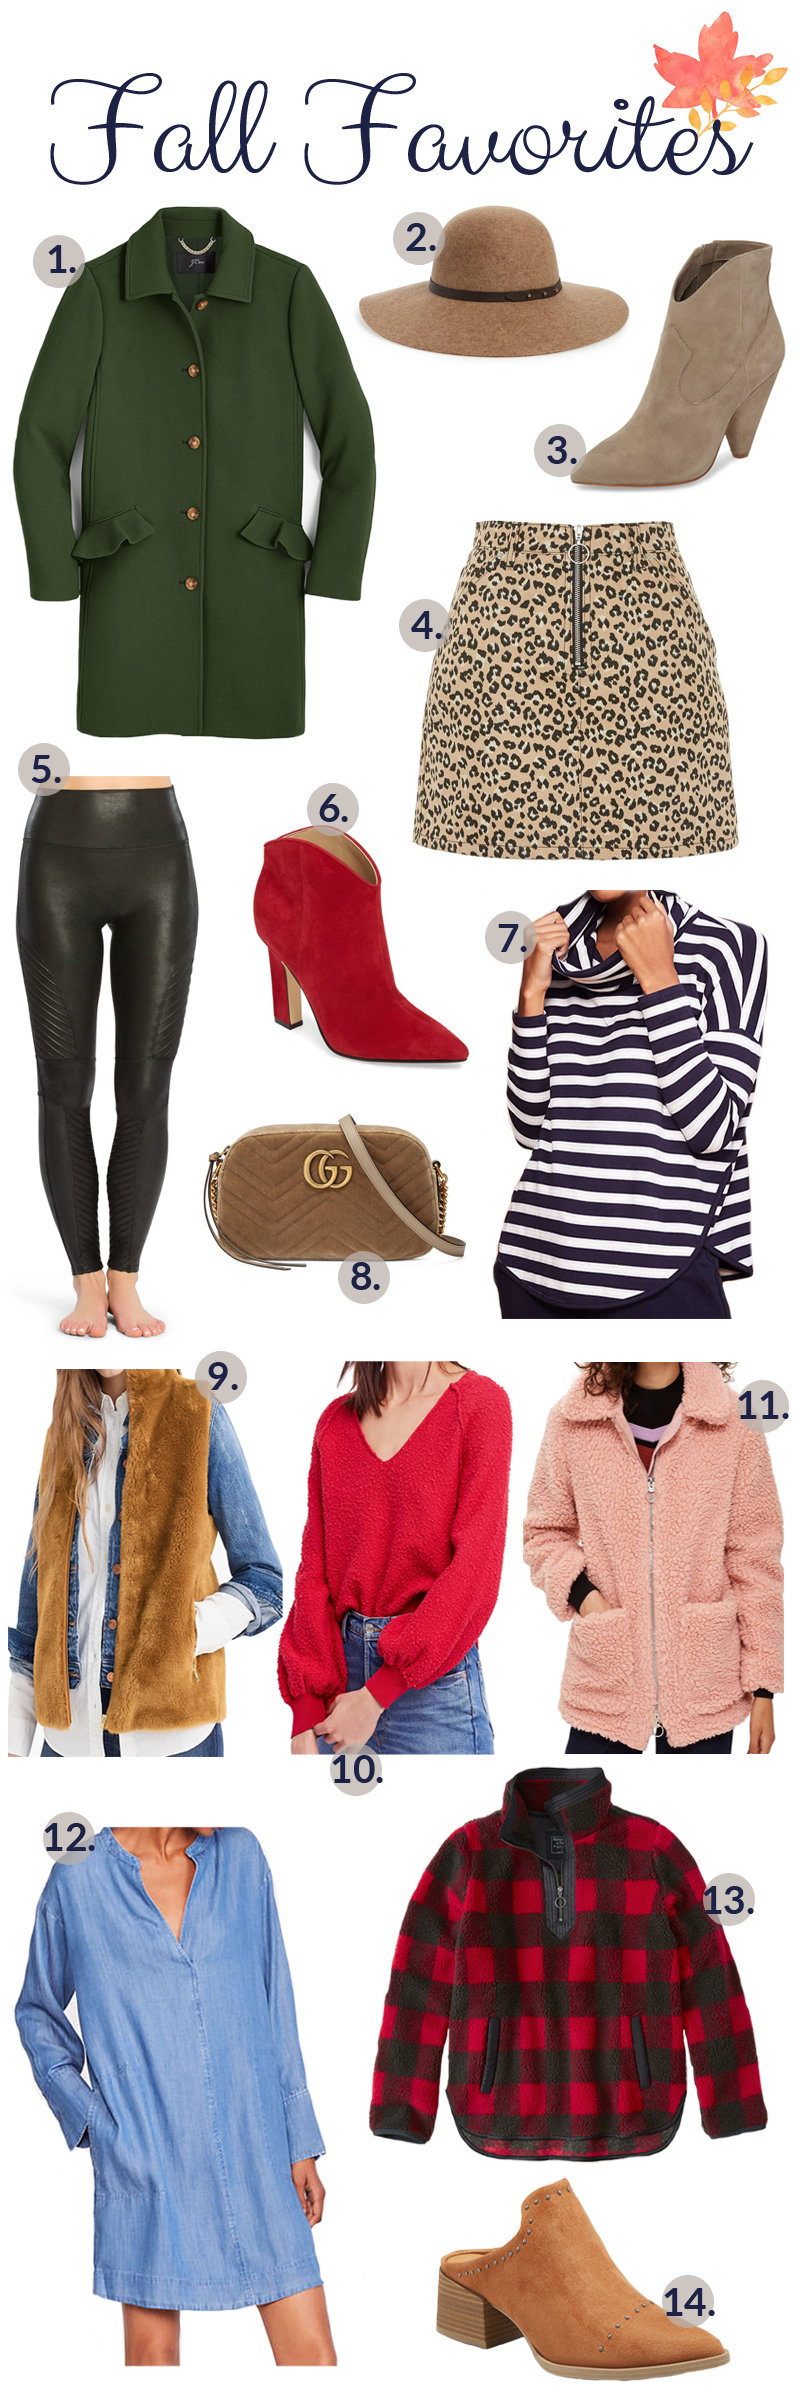 Fall Favorites featured by popular fashion blogger, Walking in Memphis in High Heels